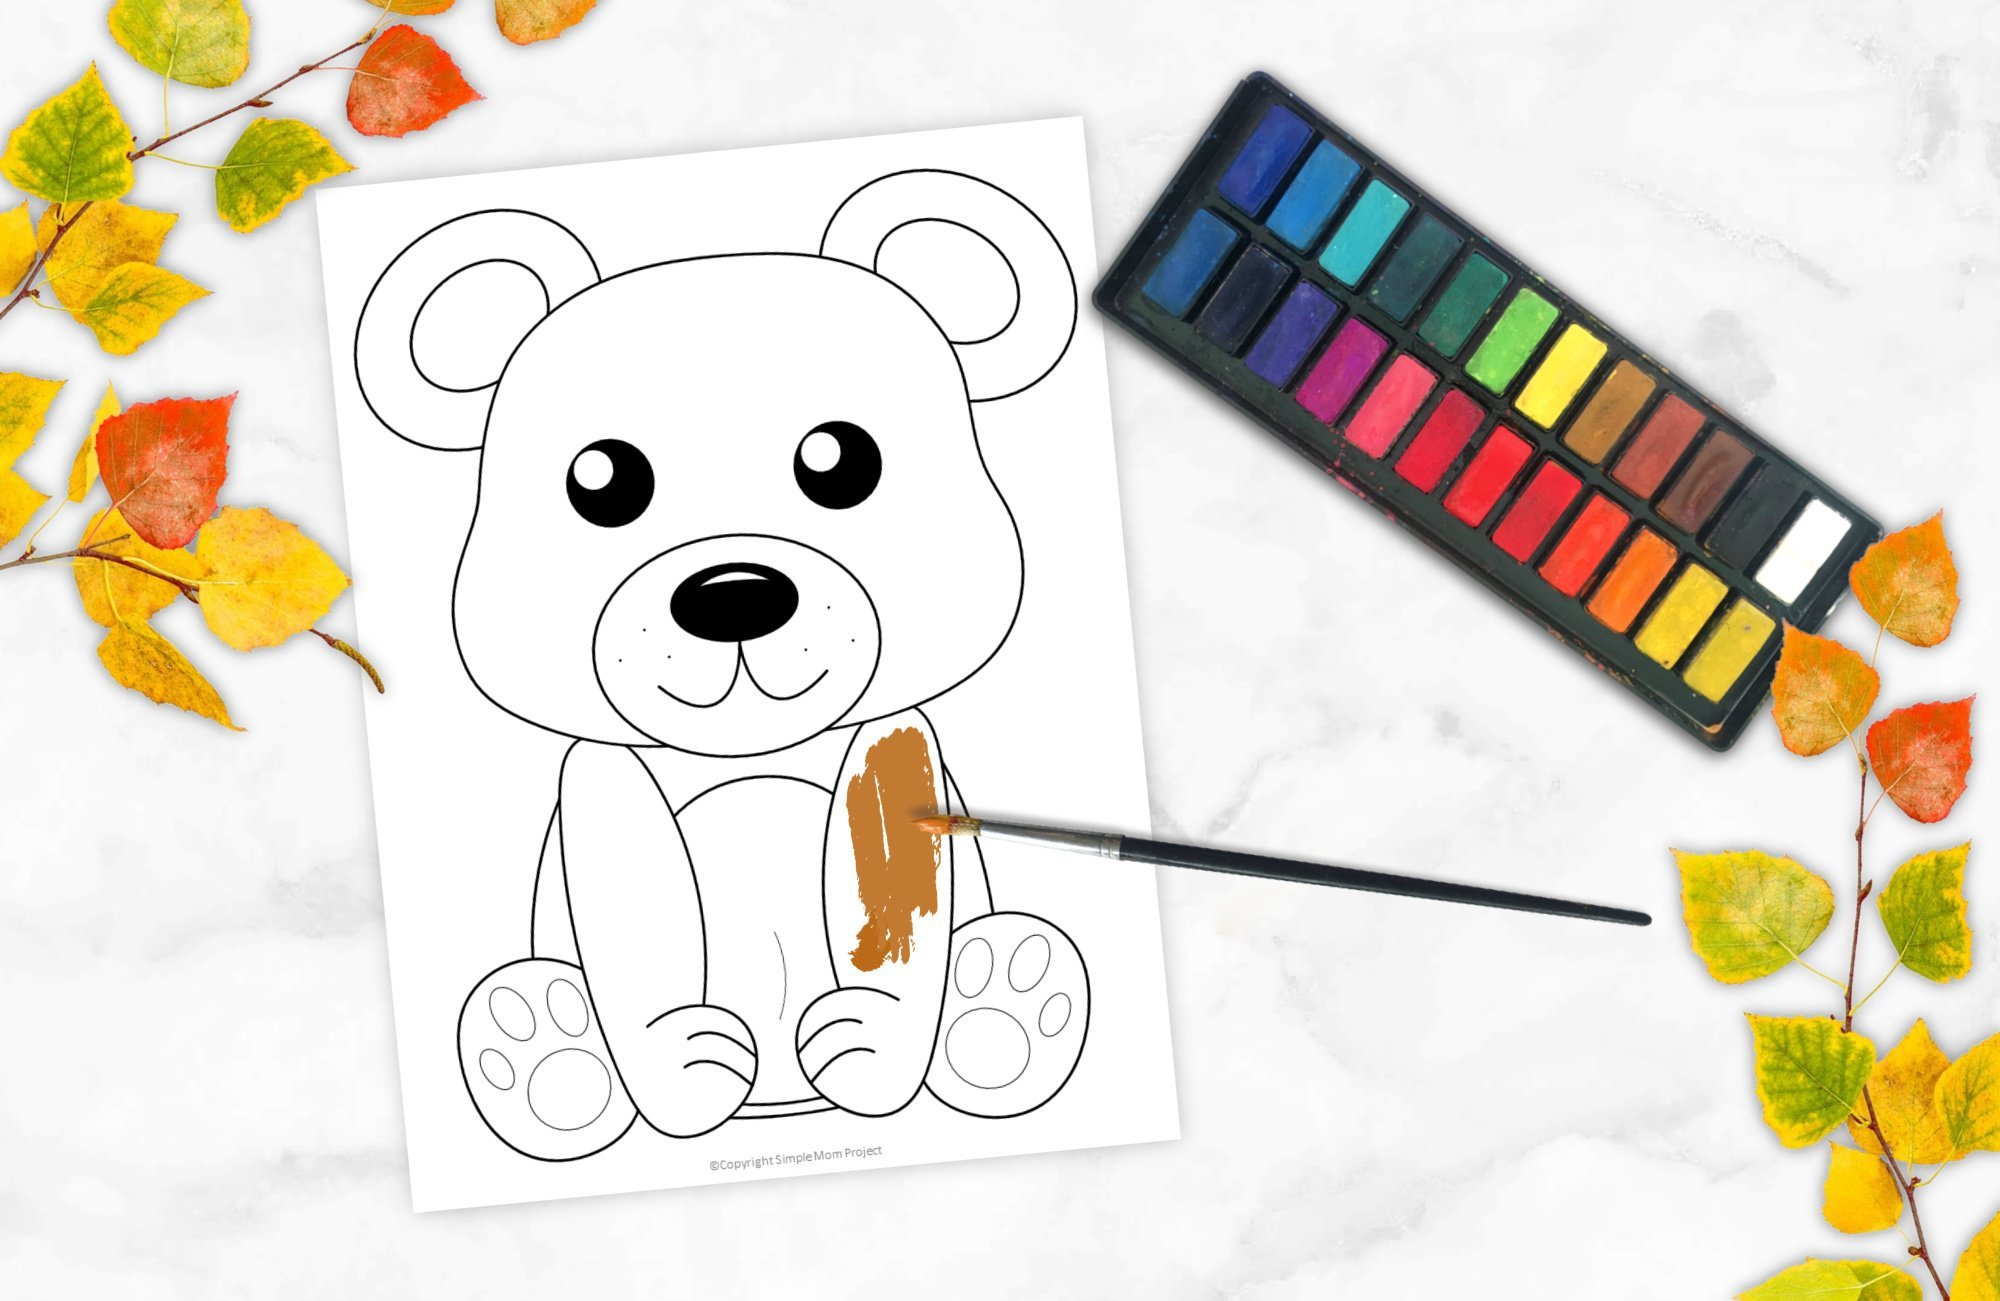 Free Printable Woodland Forest Bear Coloring Page for Kids Preschoolers Toddlers and kindergartners